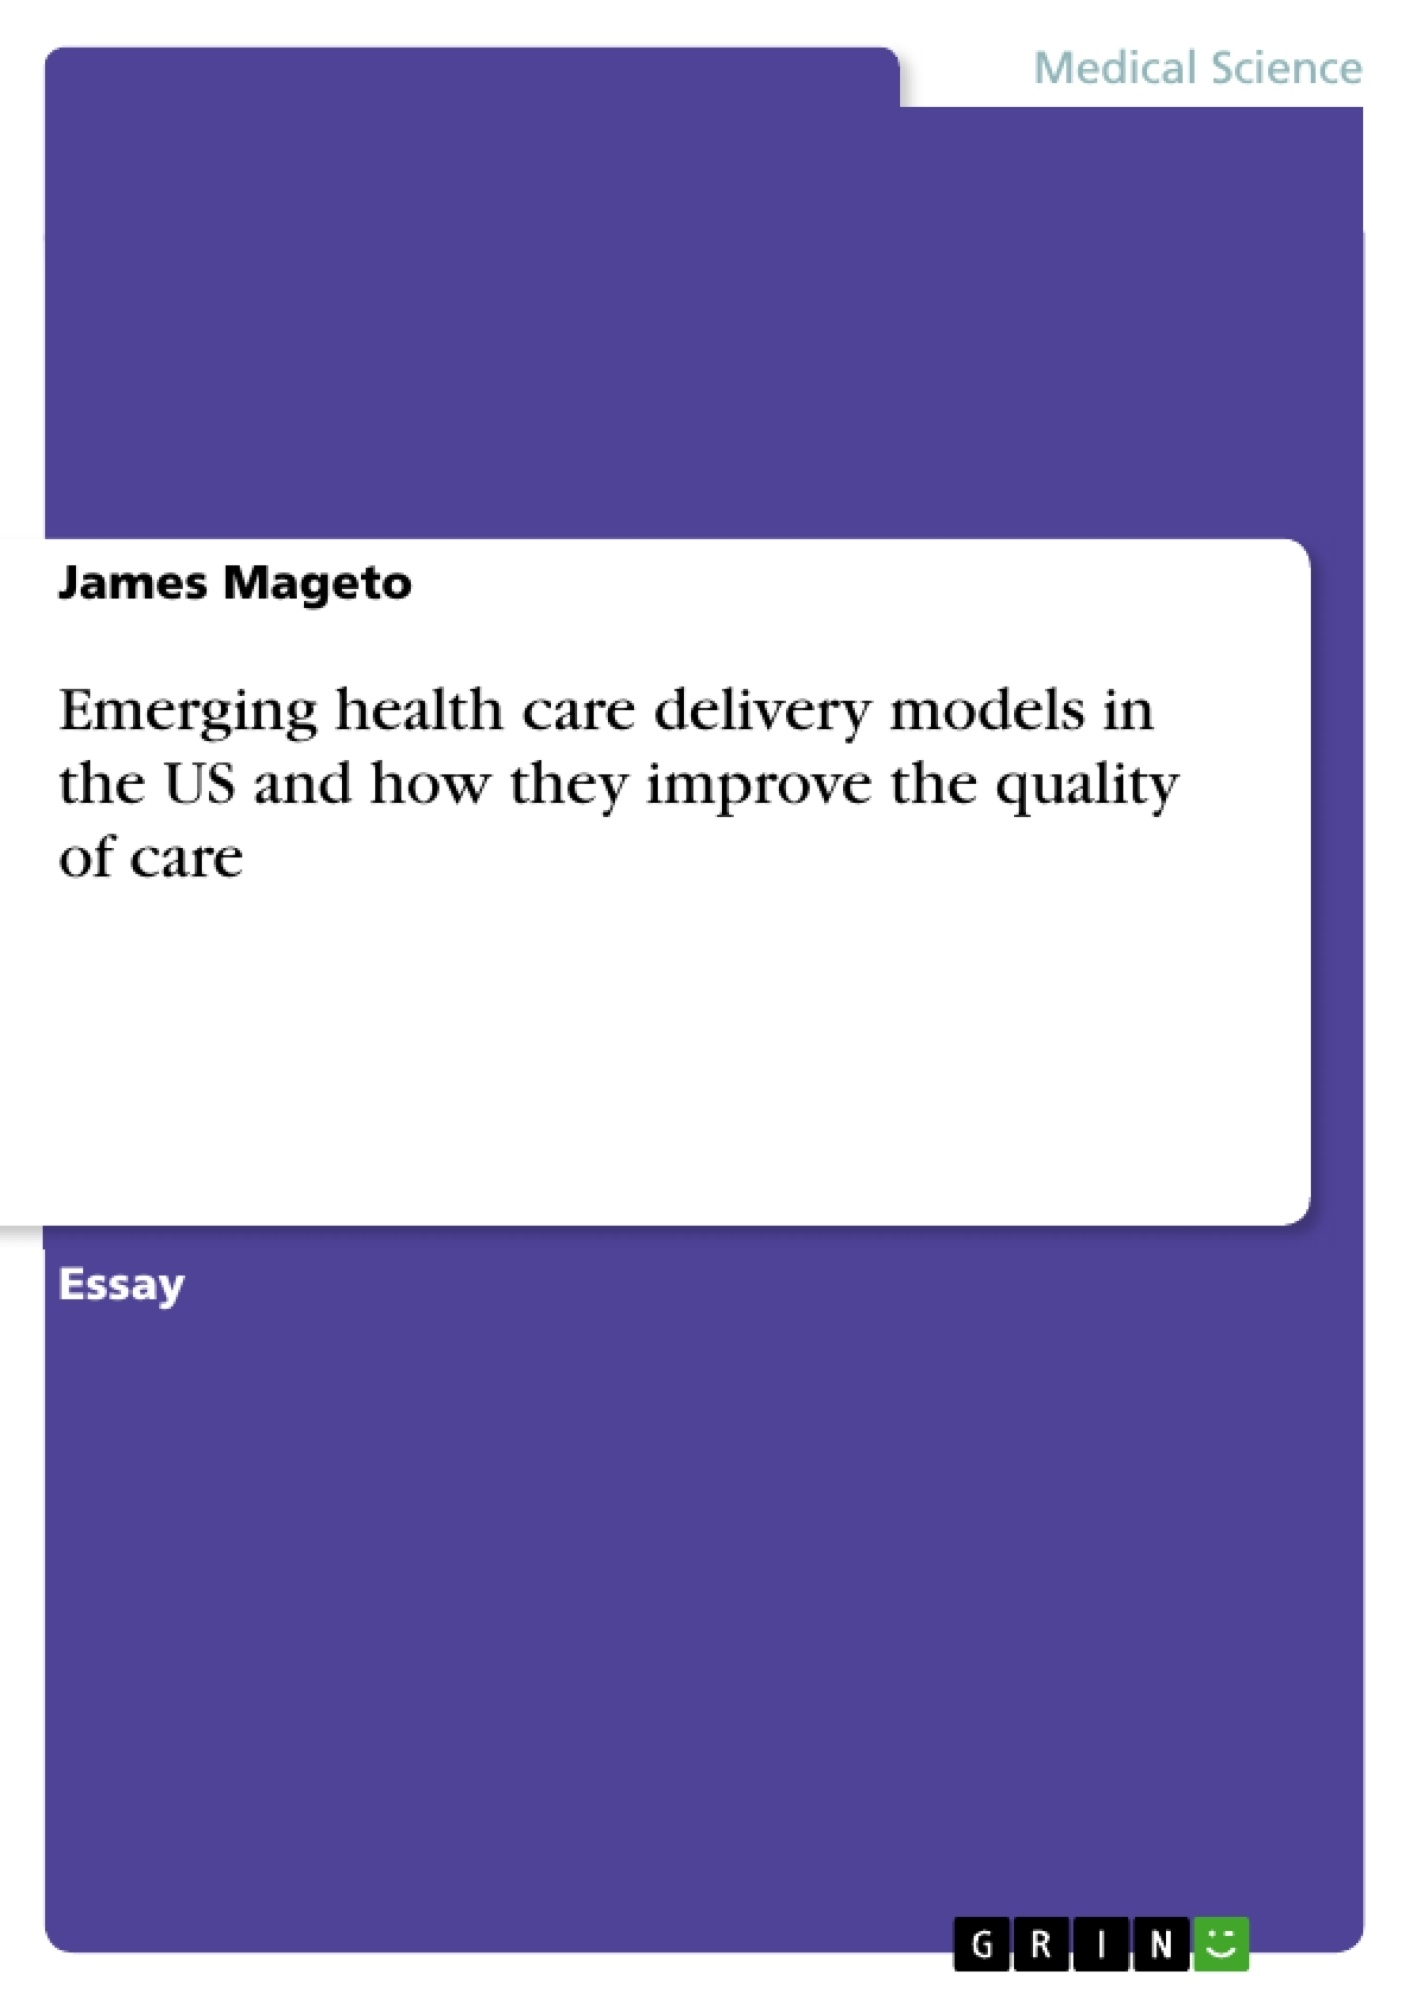 Title: Emerging health care delivery models in the US and how they improve the quality of care